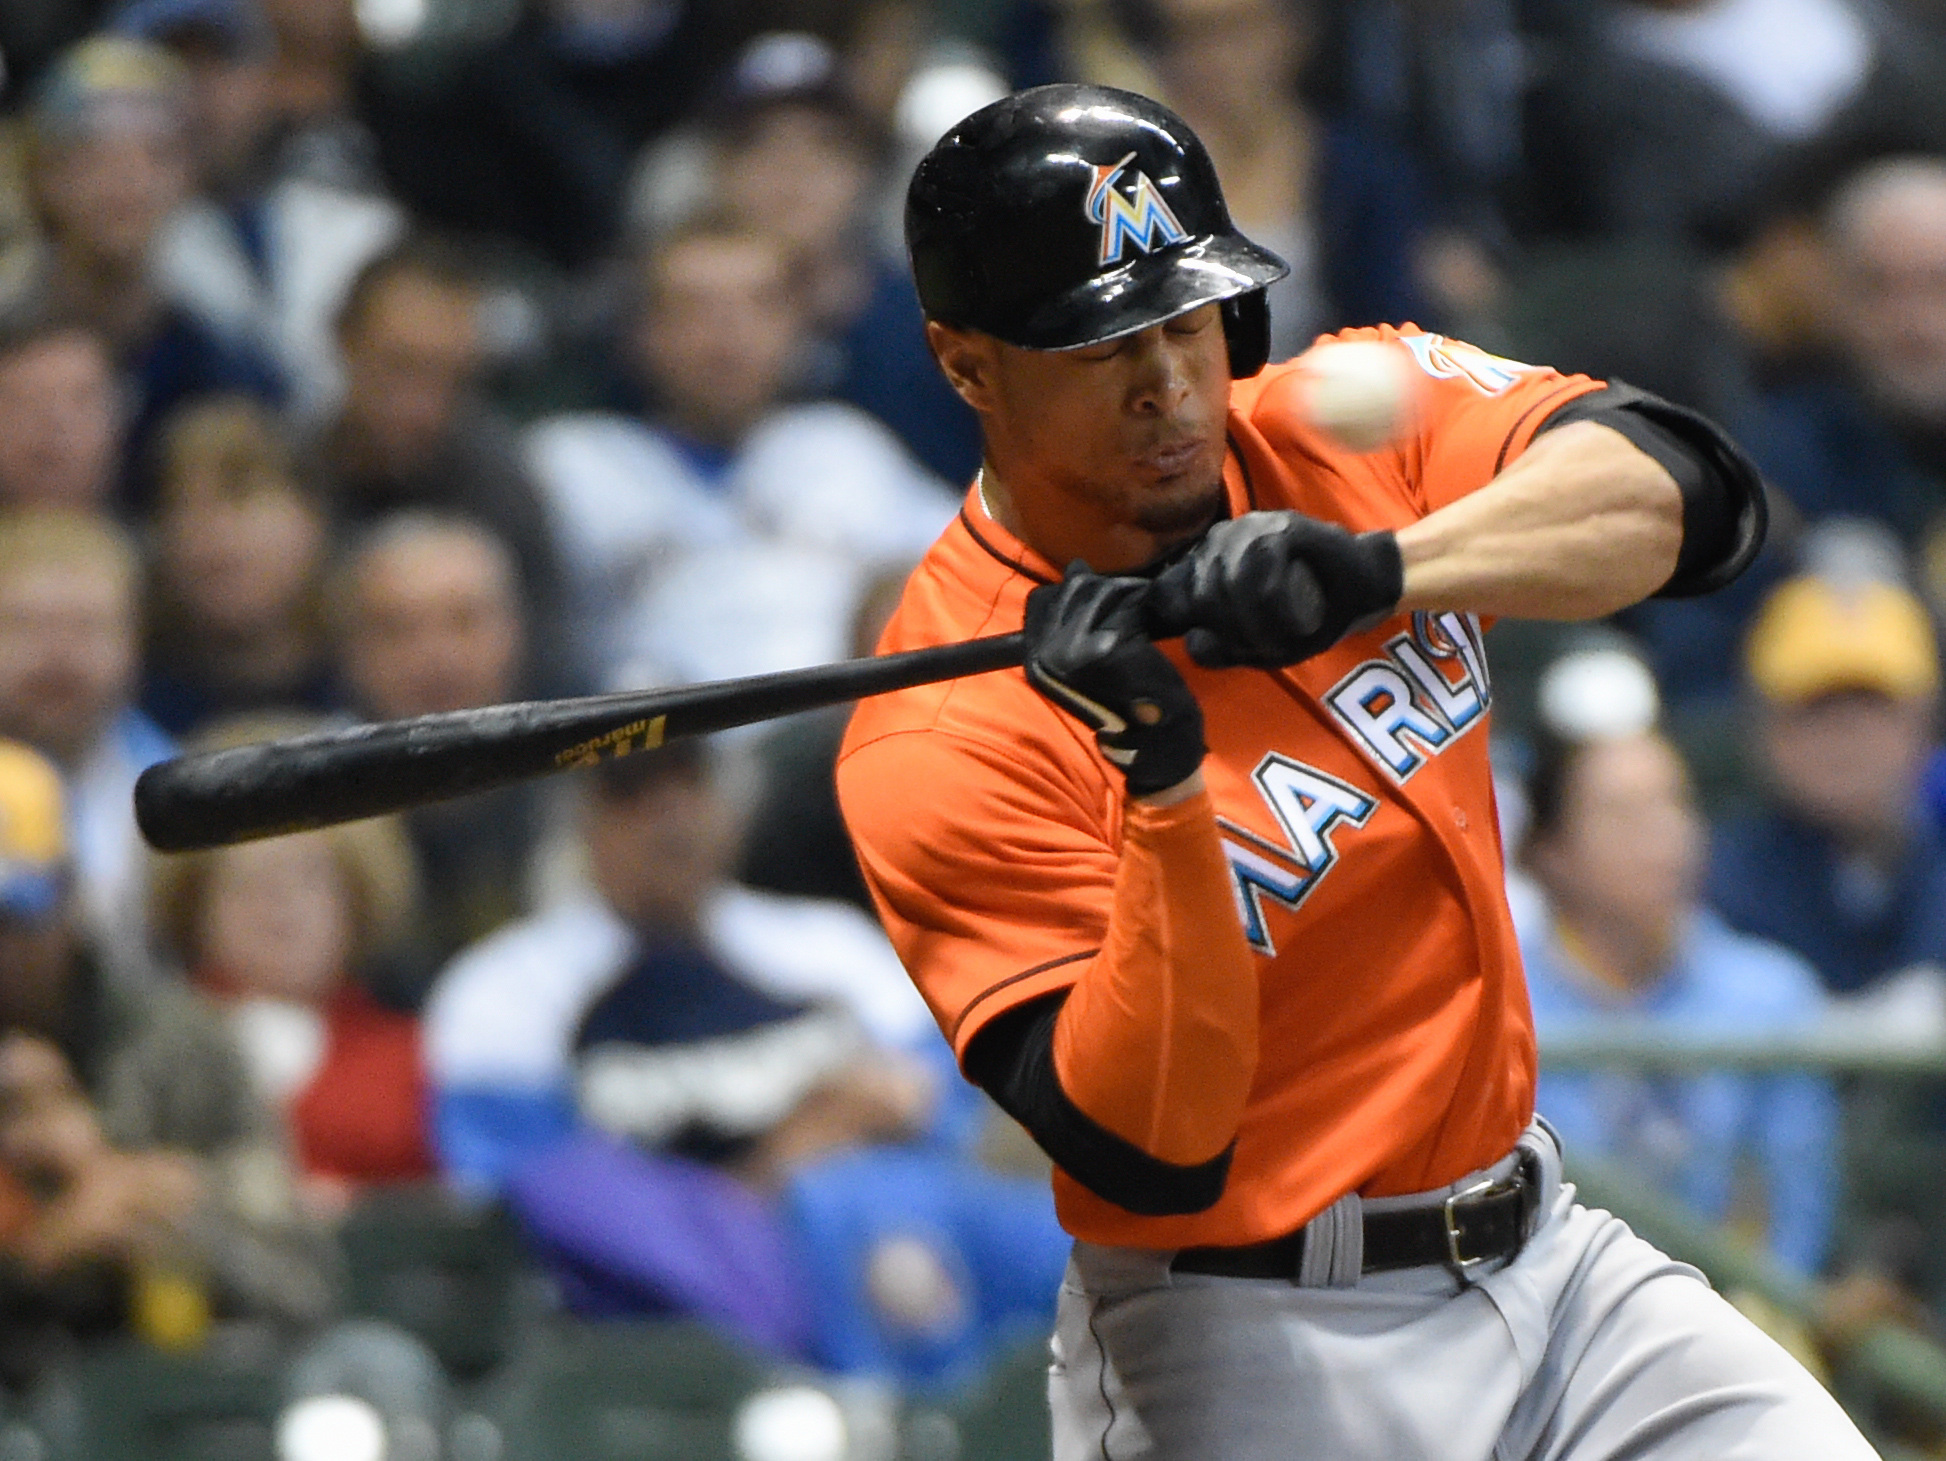 Giancarlo Stanton sounds like hes had it with the Marlins